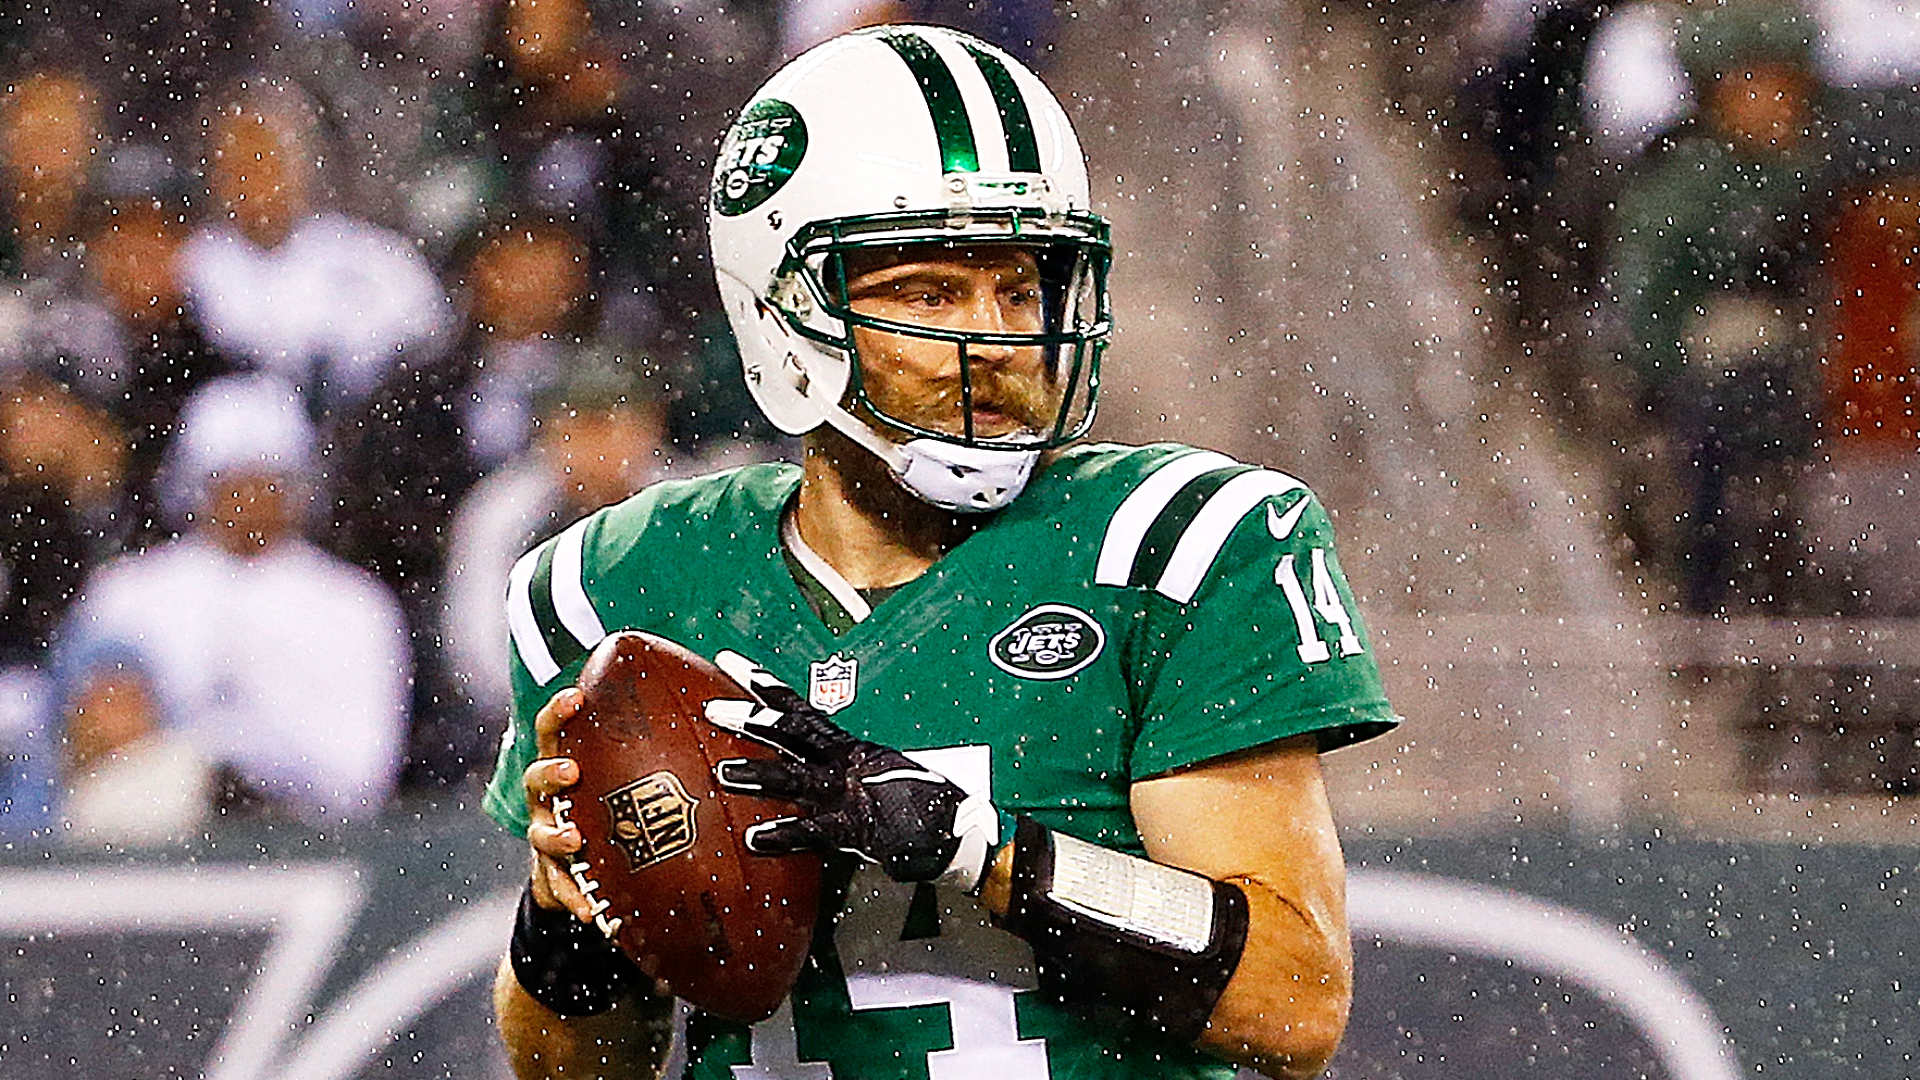 Ryan-Fitzpatrick-111215-USNews-Getty-FTR